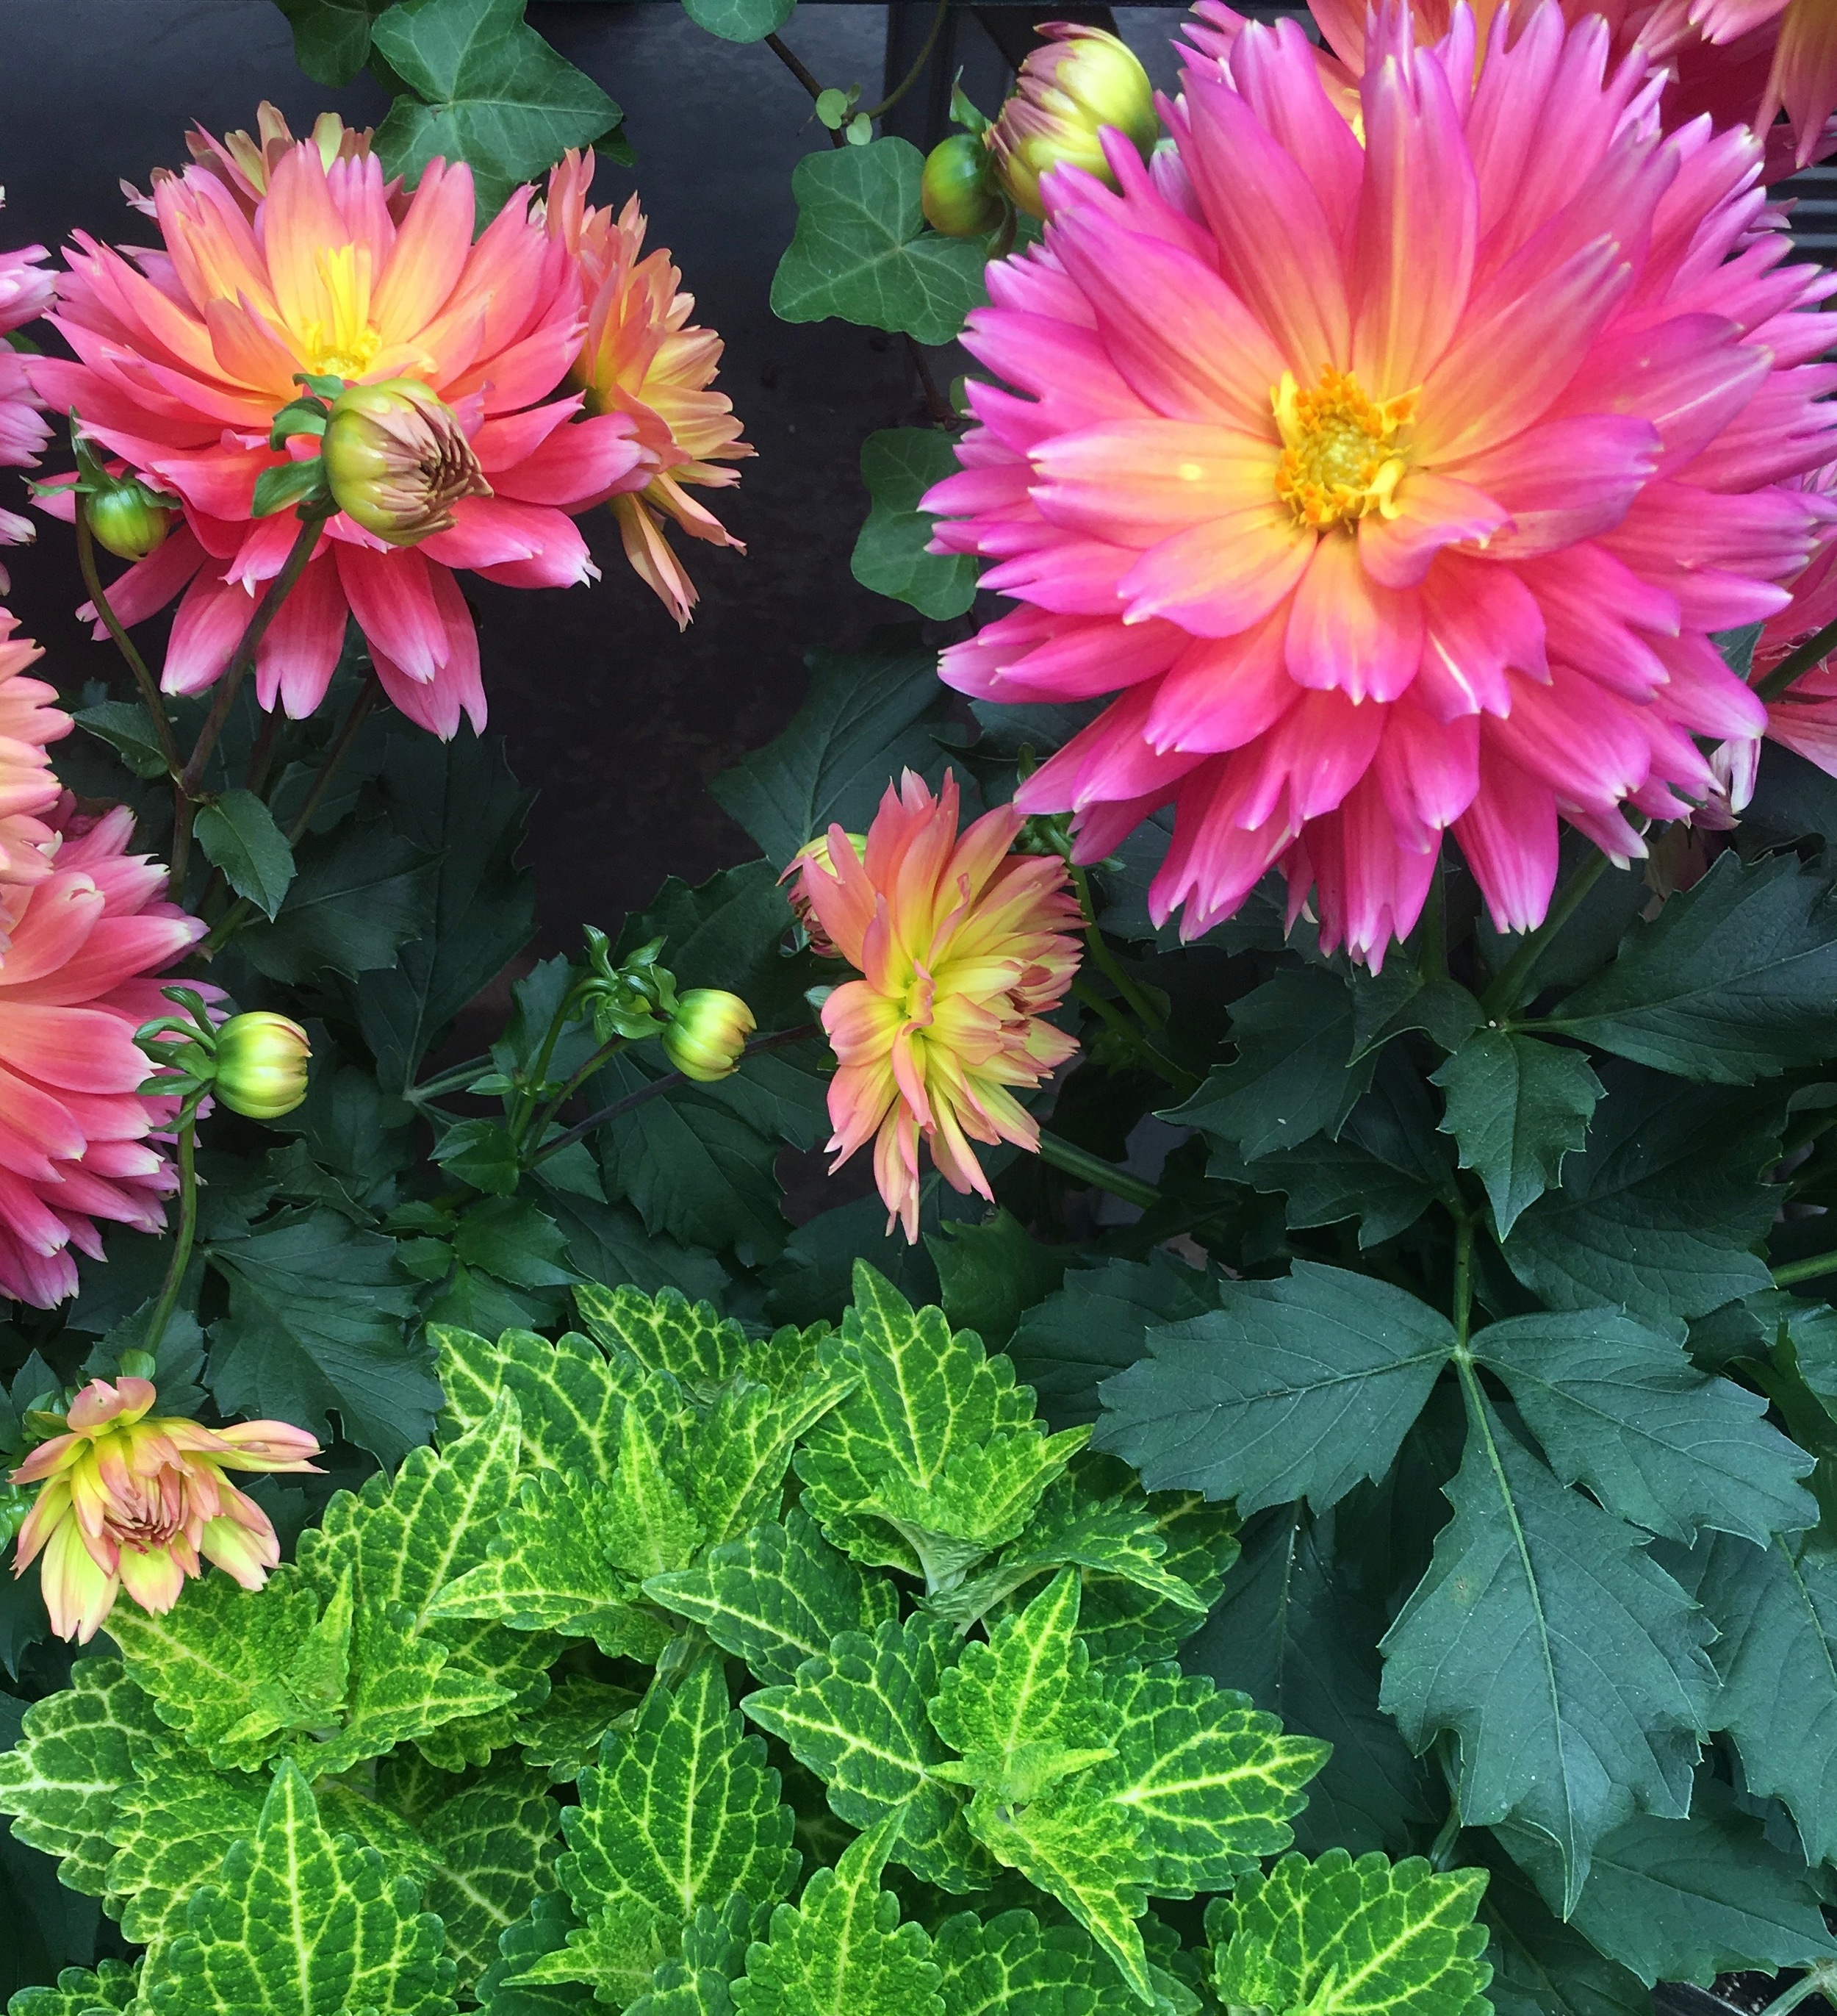 Dahlias typically blooming in August available now to meet the growing demand for instant color